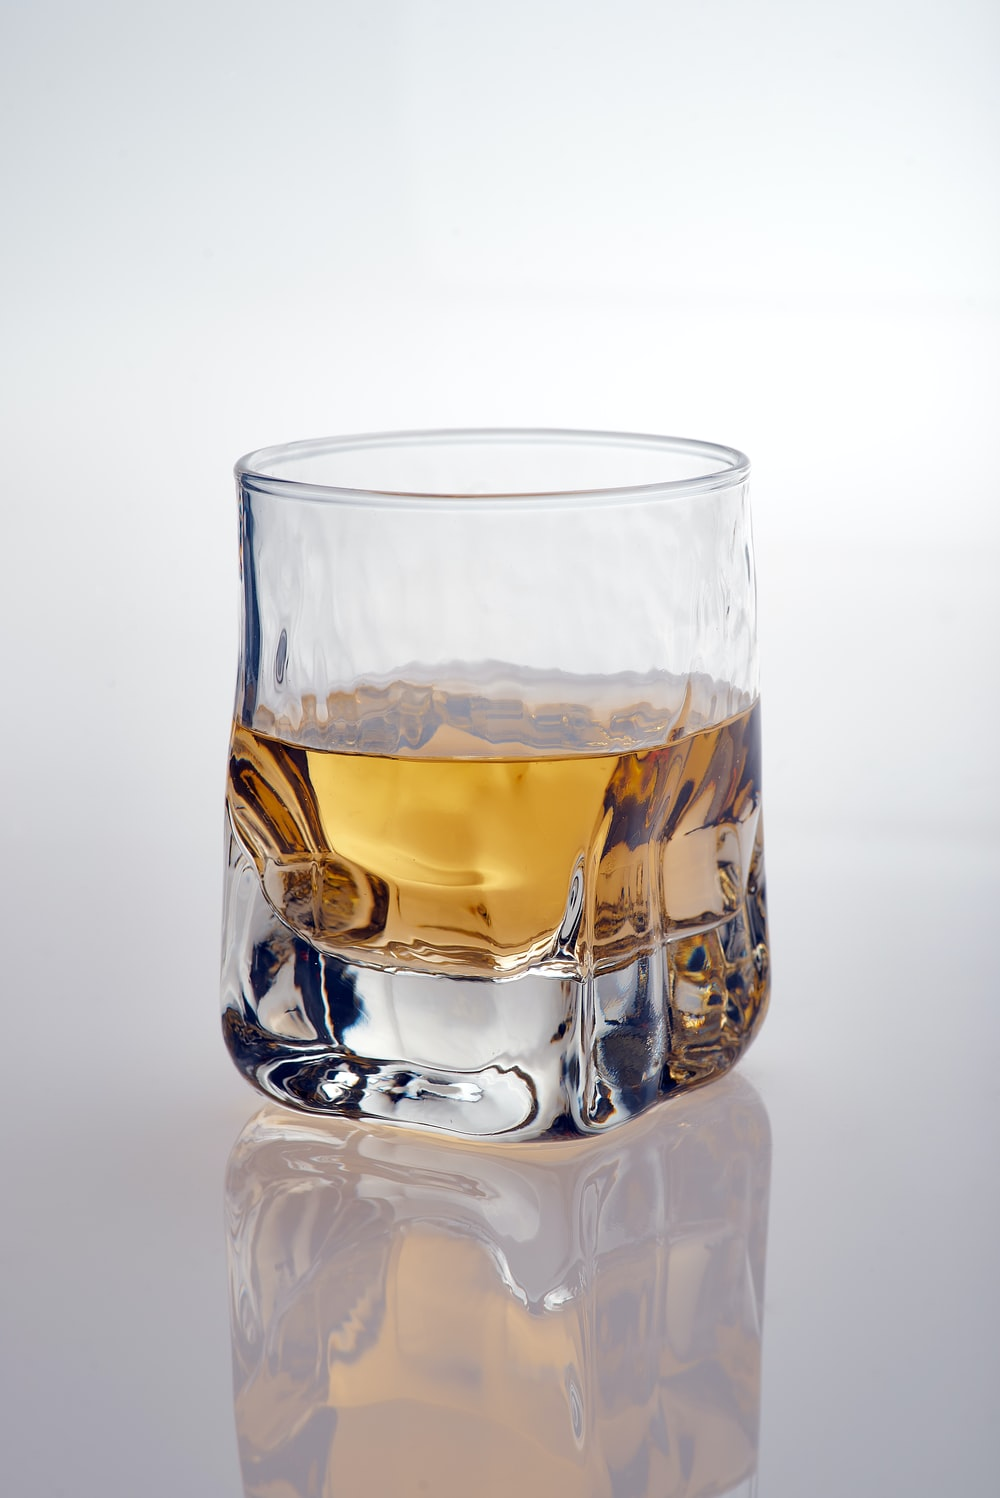 rockglass filled with liquor